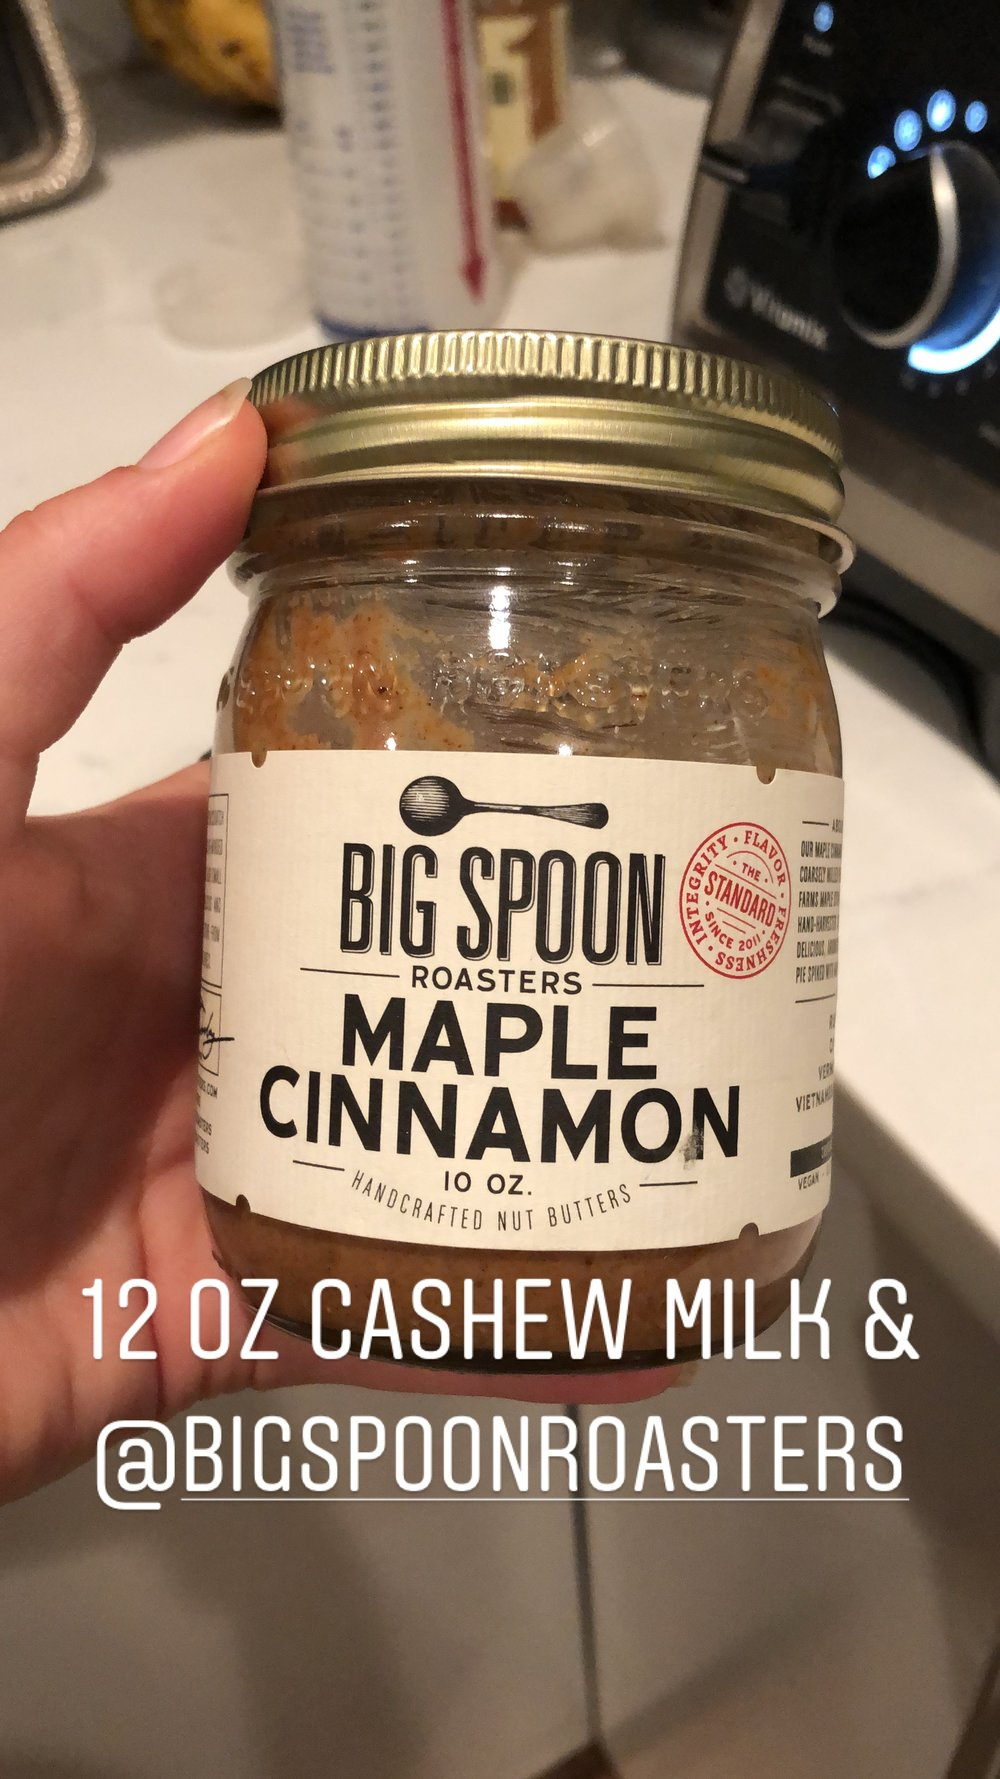 Big Spoon Roasters Maple Cinnamon